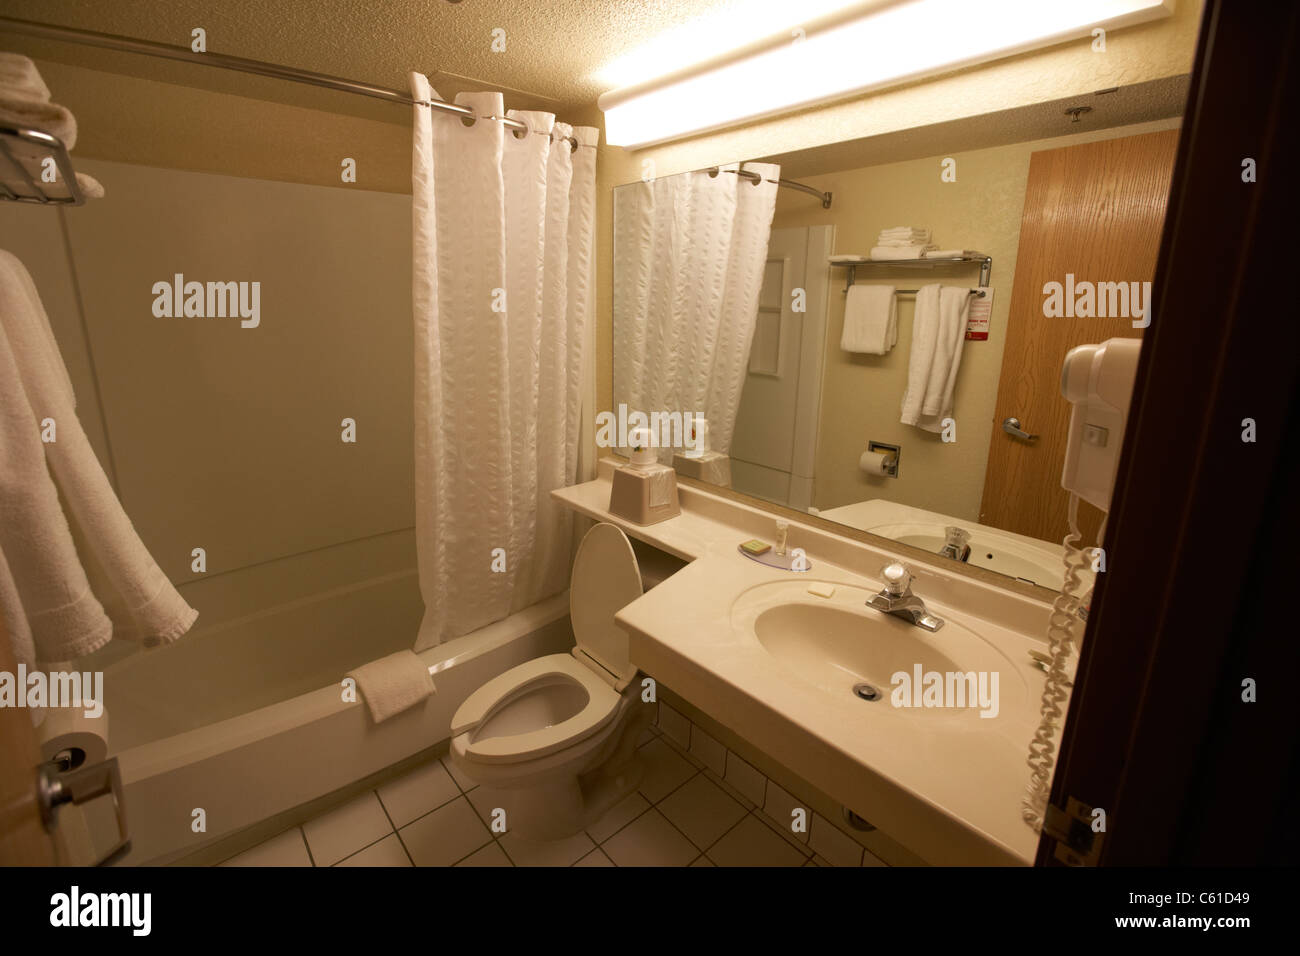 cheap hotel motel bathroom in the usa - Stock Image